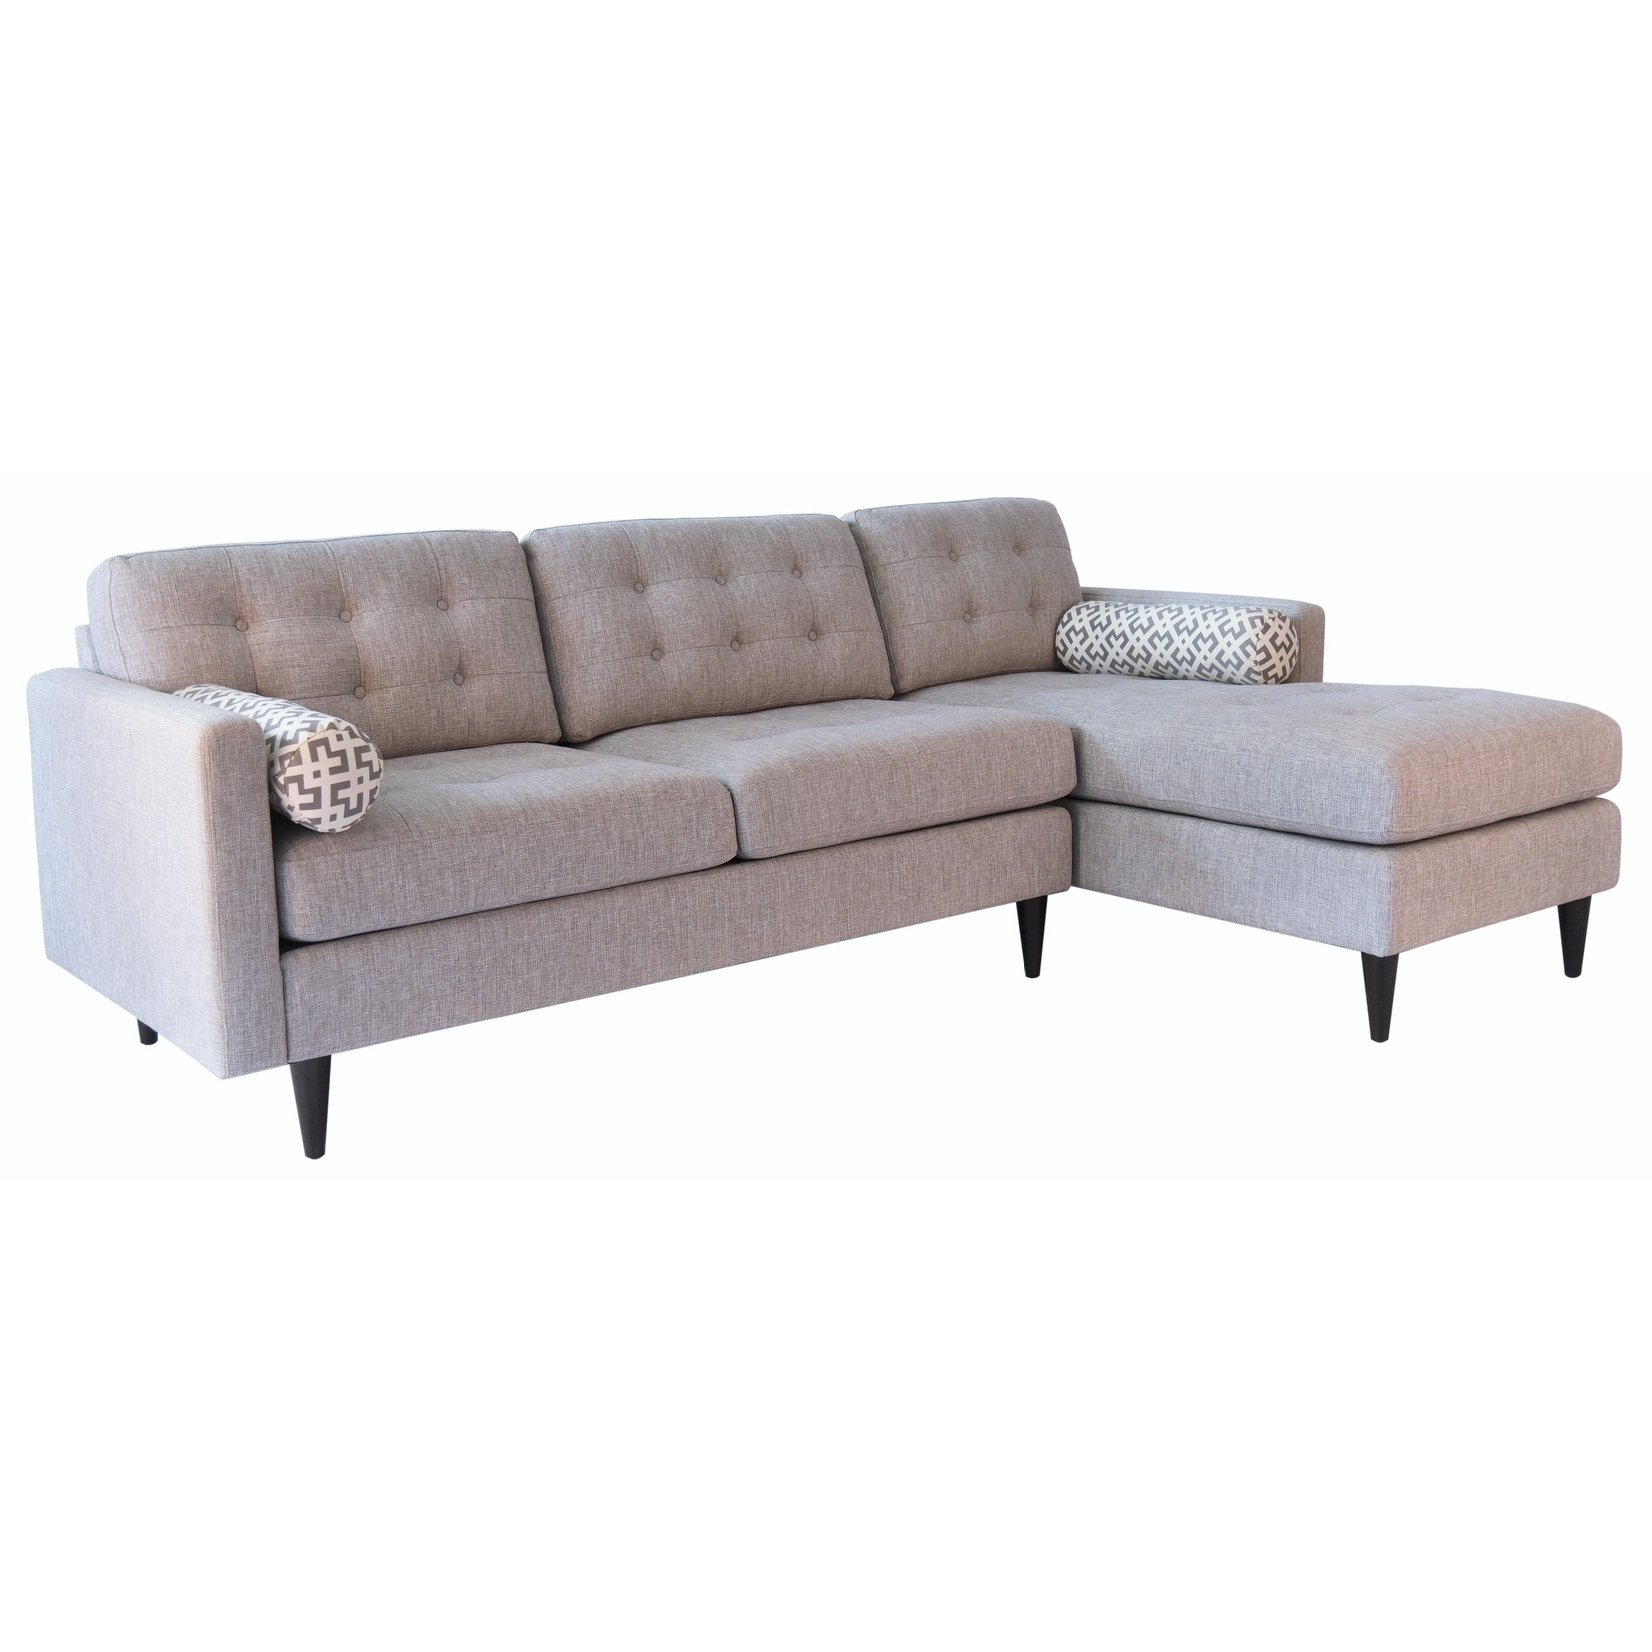 Incredible Abbyson Aiden Grey Mid Century Tufted Sectional Gmtry Best Dining Table And Chair Ideas Images Gmtryco